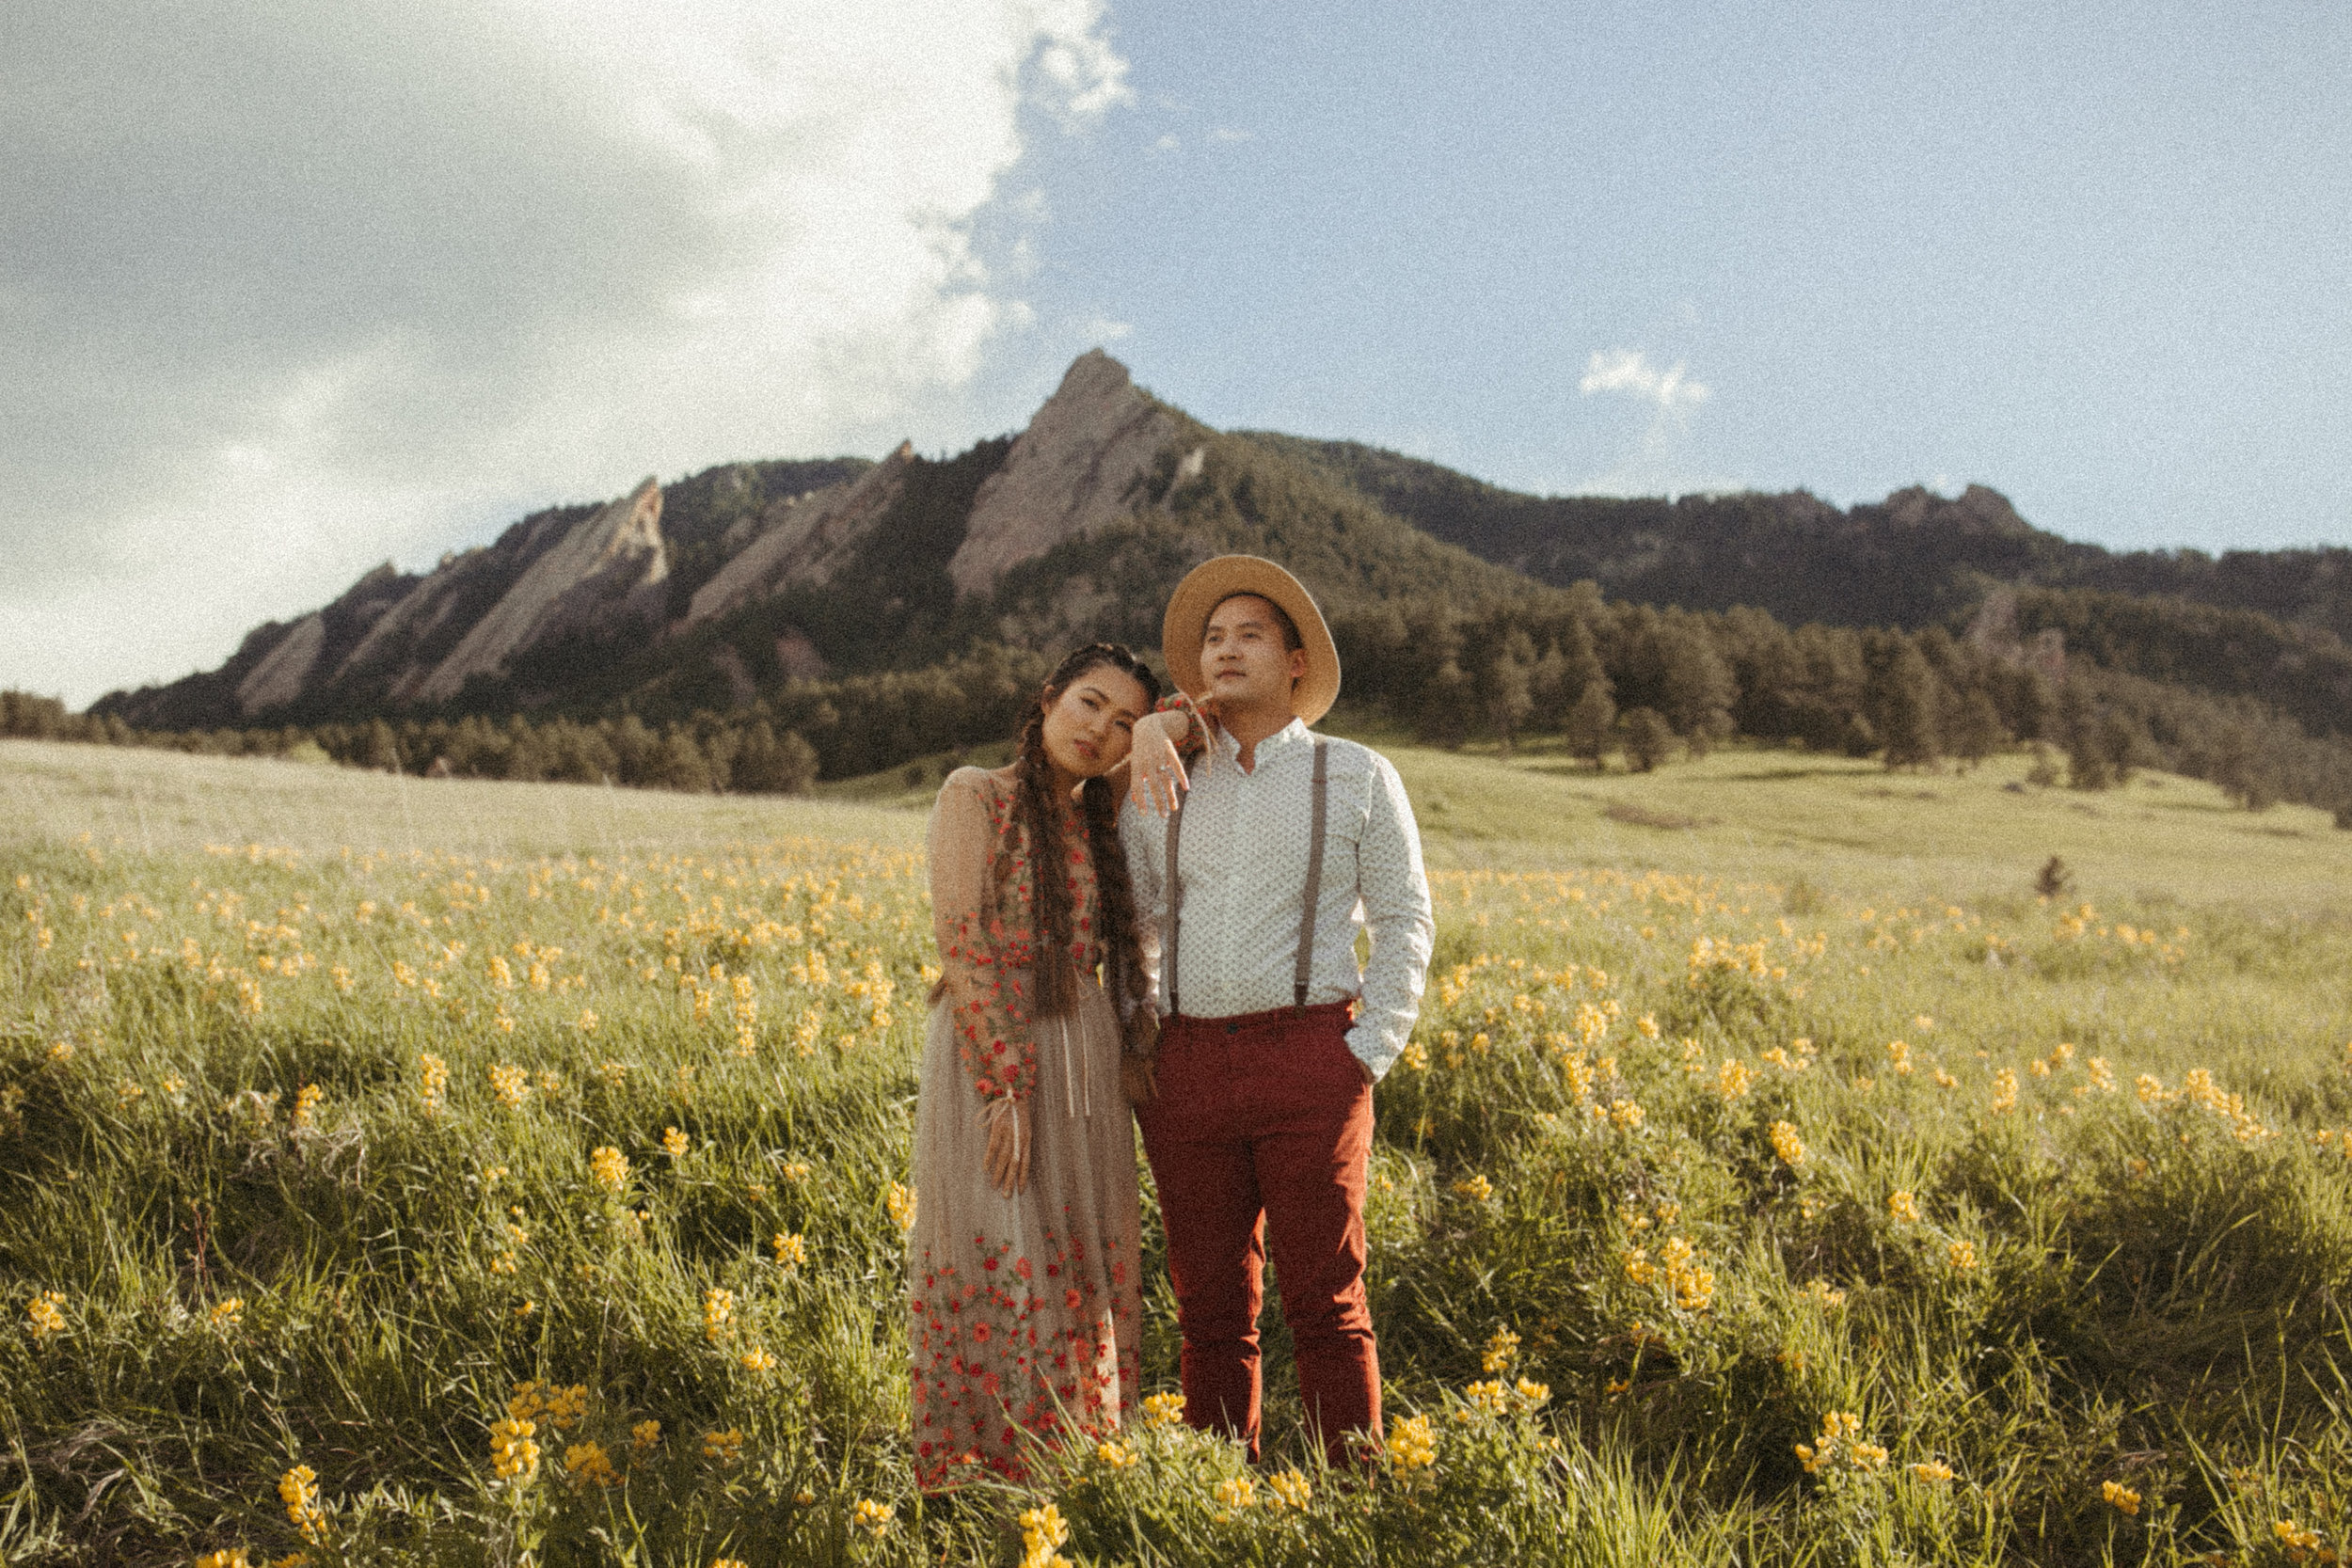 Liz + Nate's timeless mountain engagement - I know, timeless is such an old lady word but that's the vibe I was getting and I'm all about it. This session gives me a little bit of Wes Anderson vibes with a touch of little house on the prairie. Also, ok Liz, yes I see you with those hair goals.